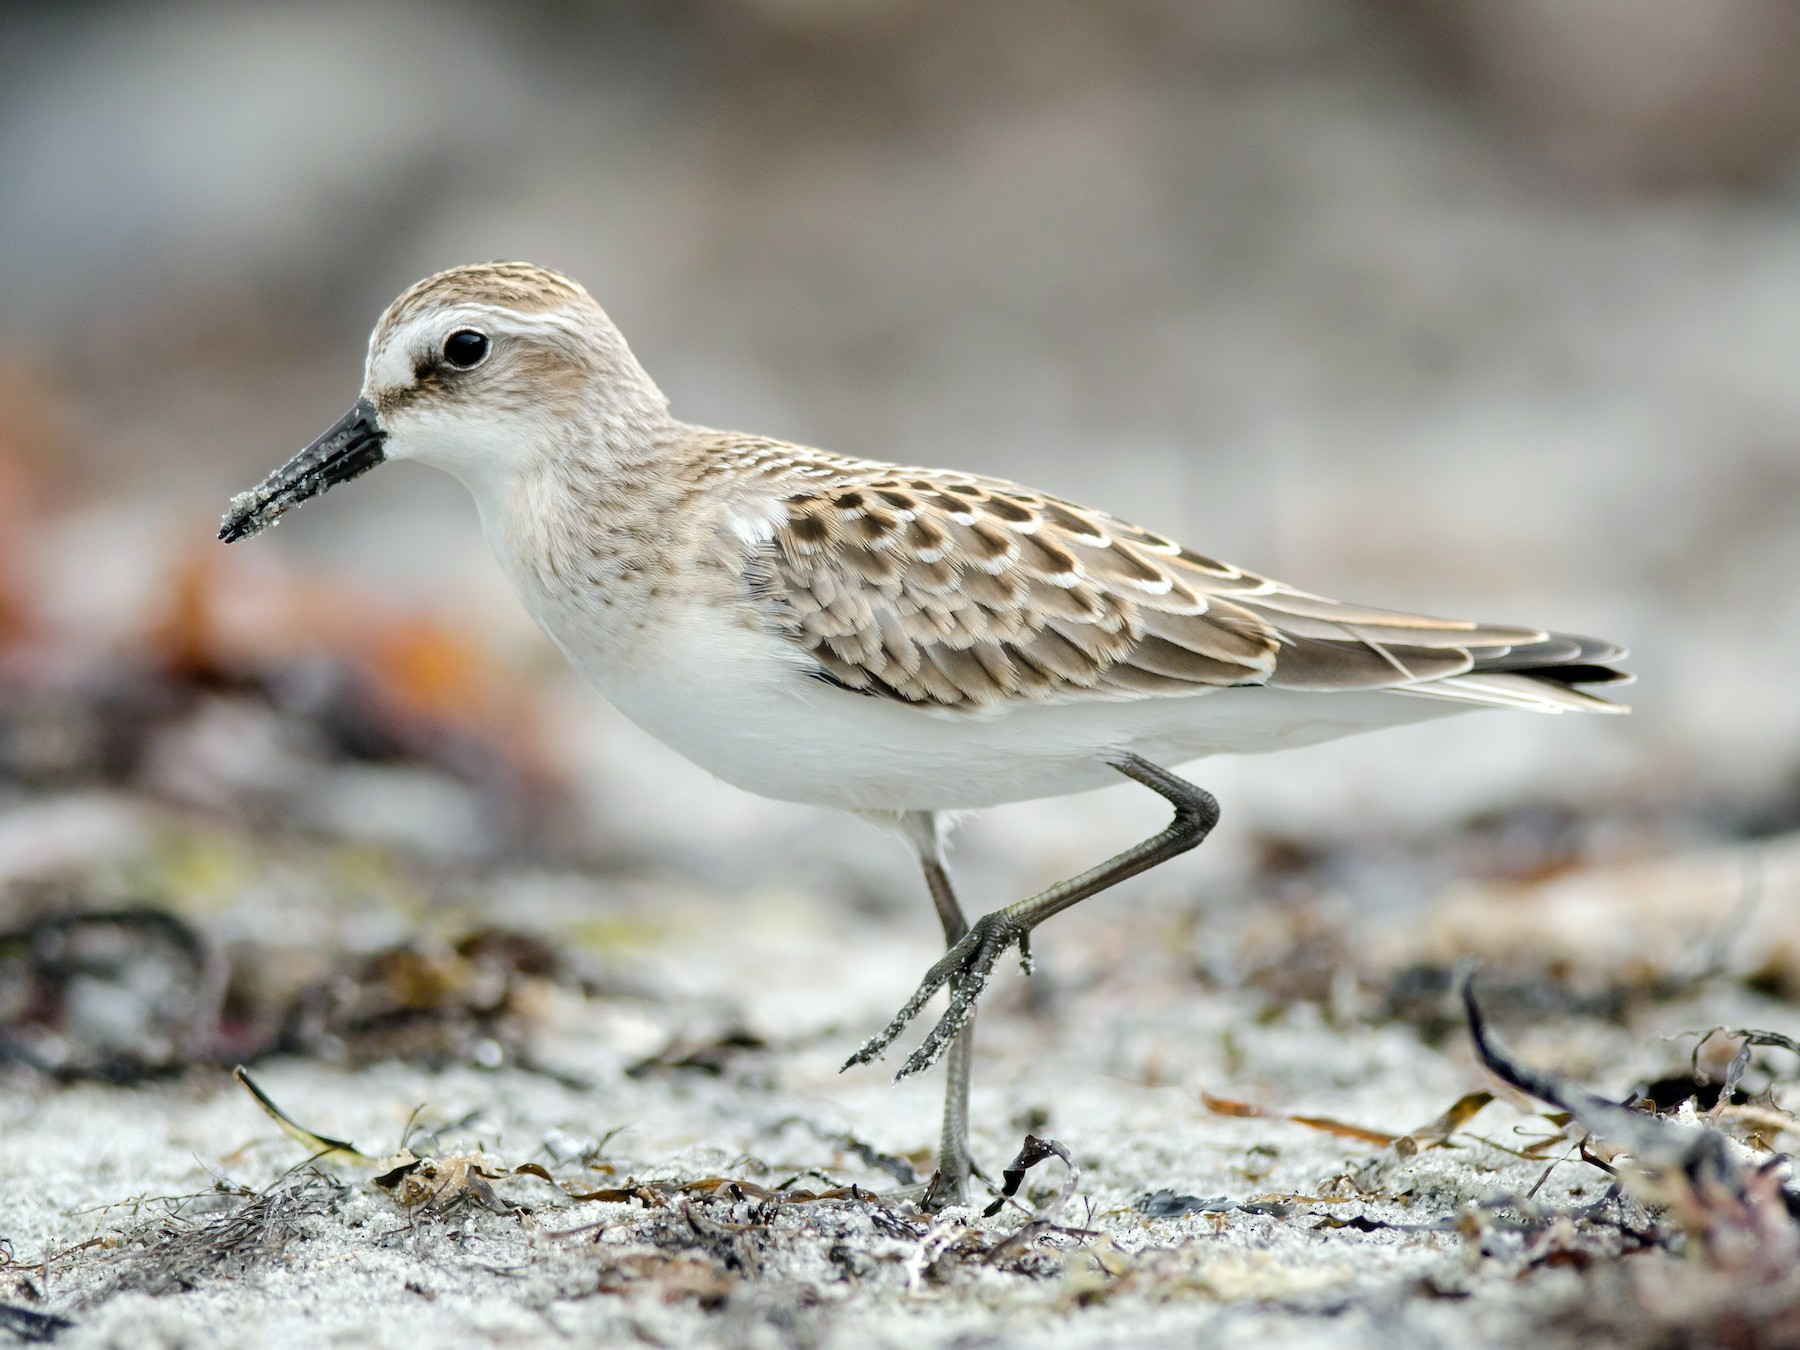 Semipalmated Sandpiper - Alix d'Entremont